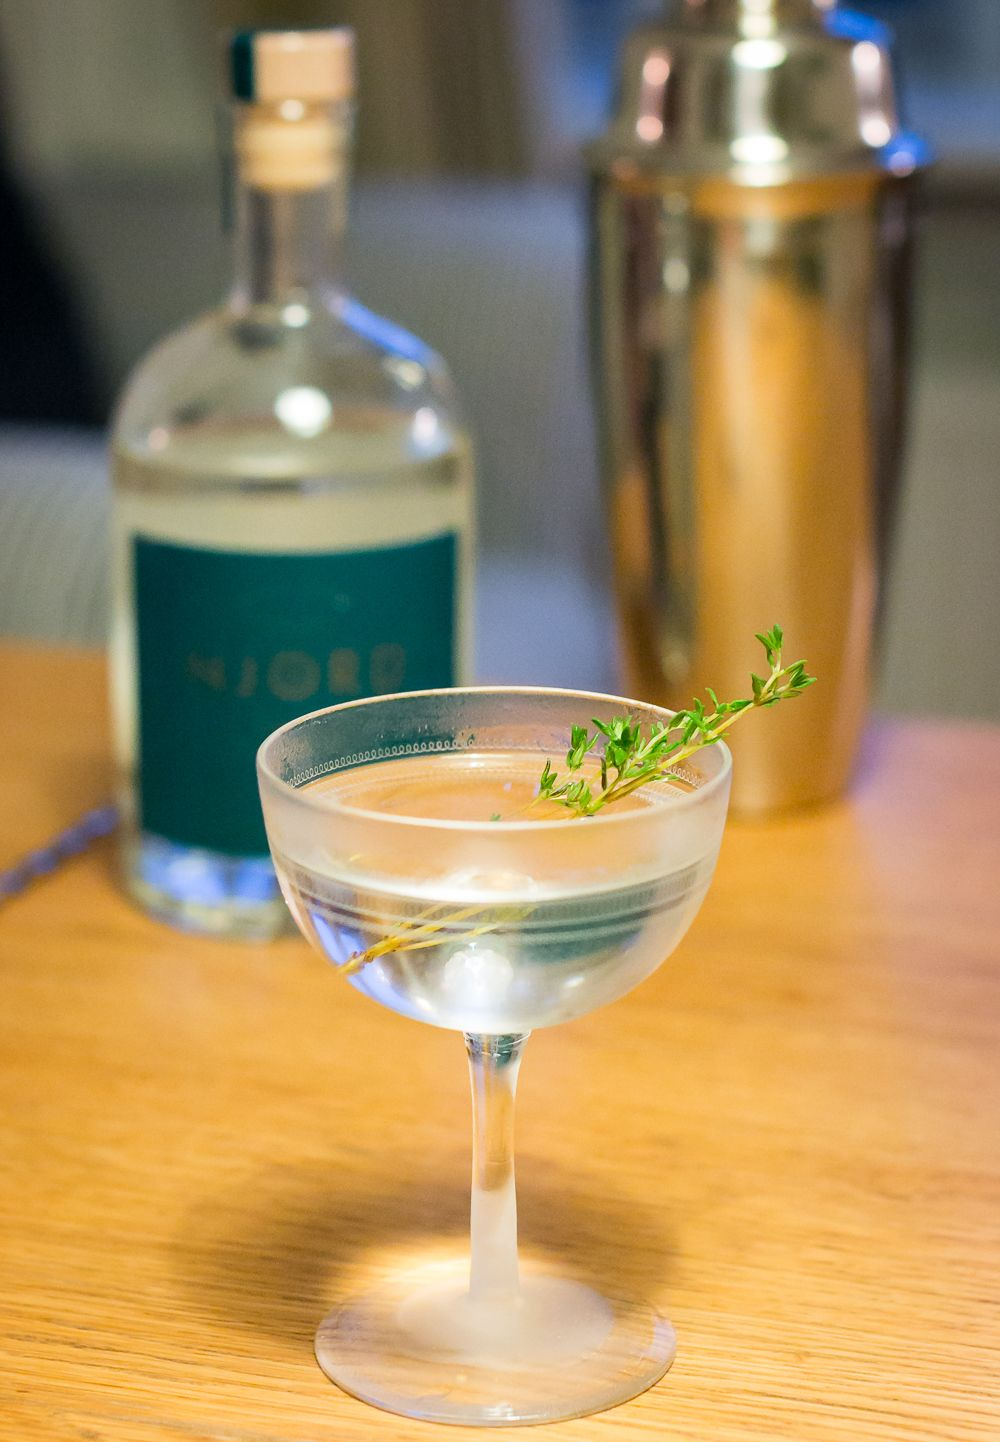 Njord Gin Martini. Photo by Michael Sperling.